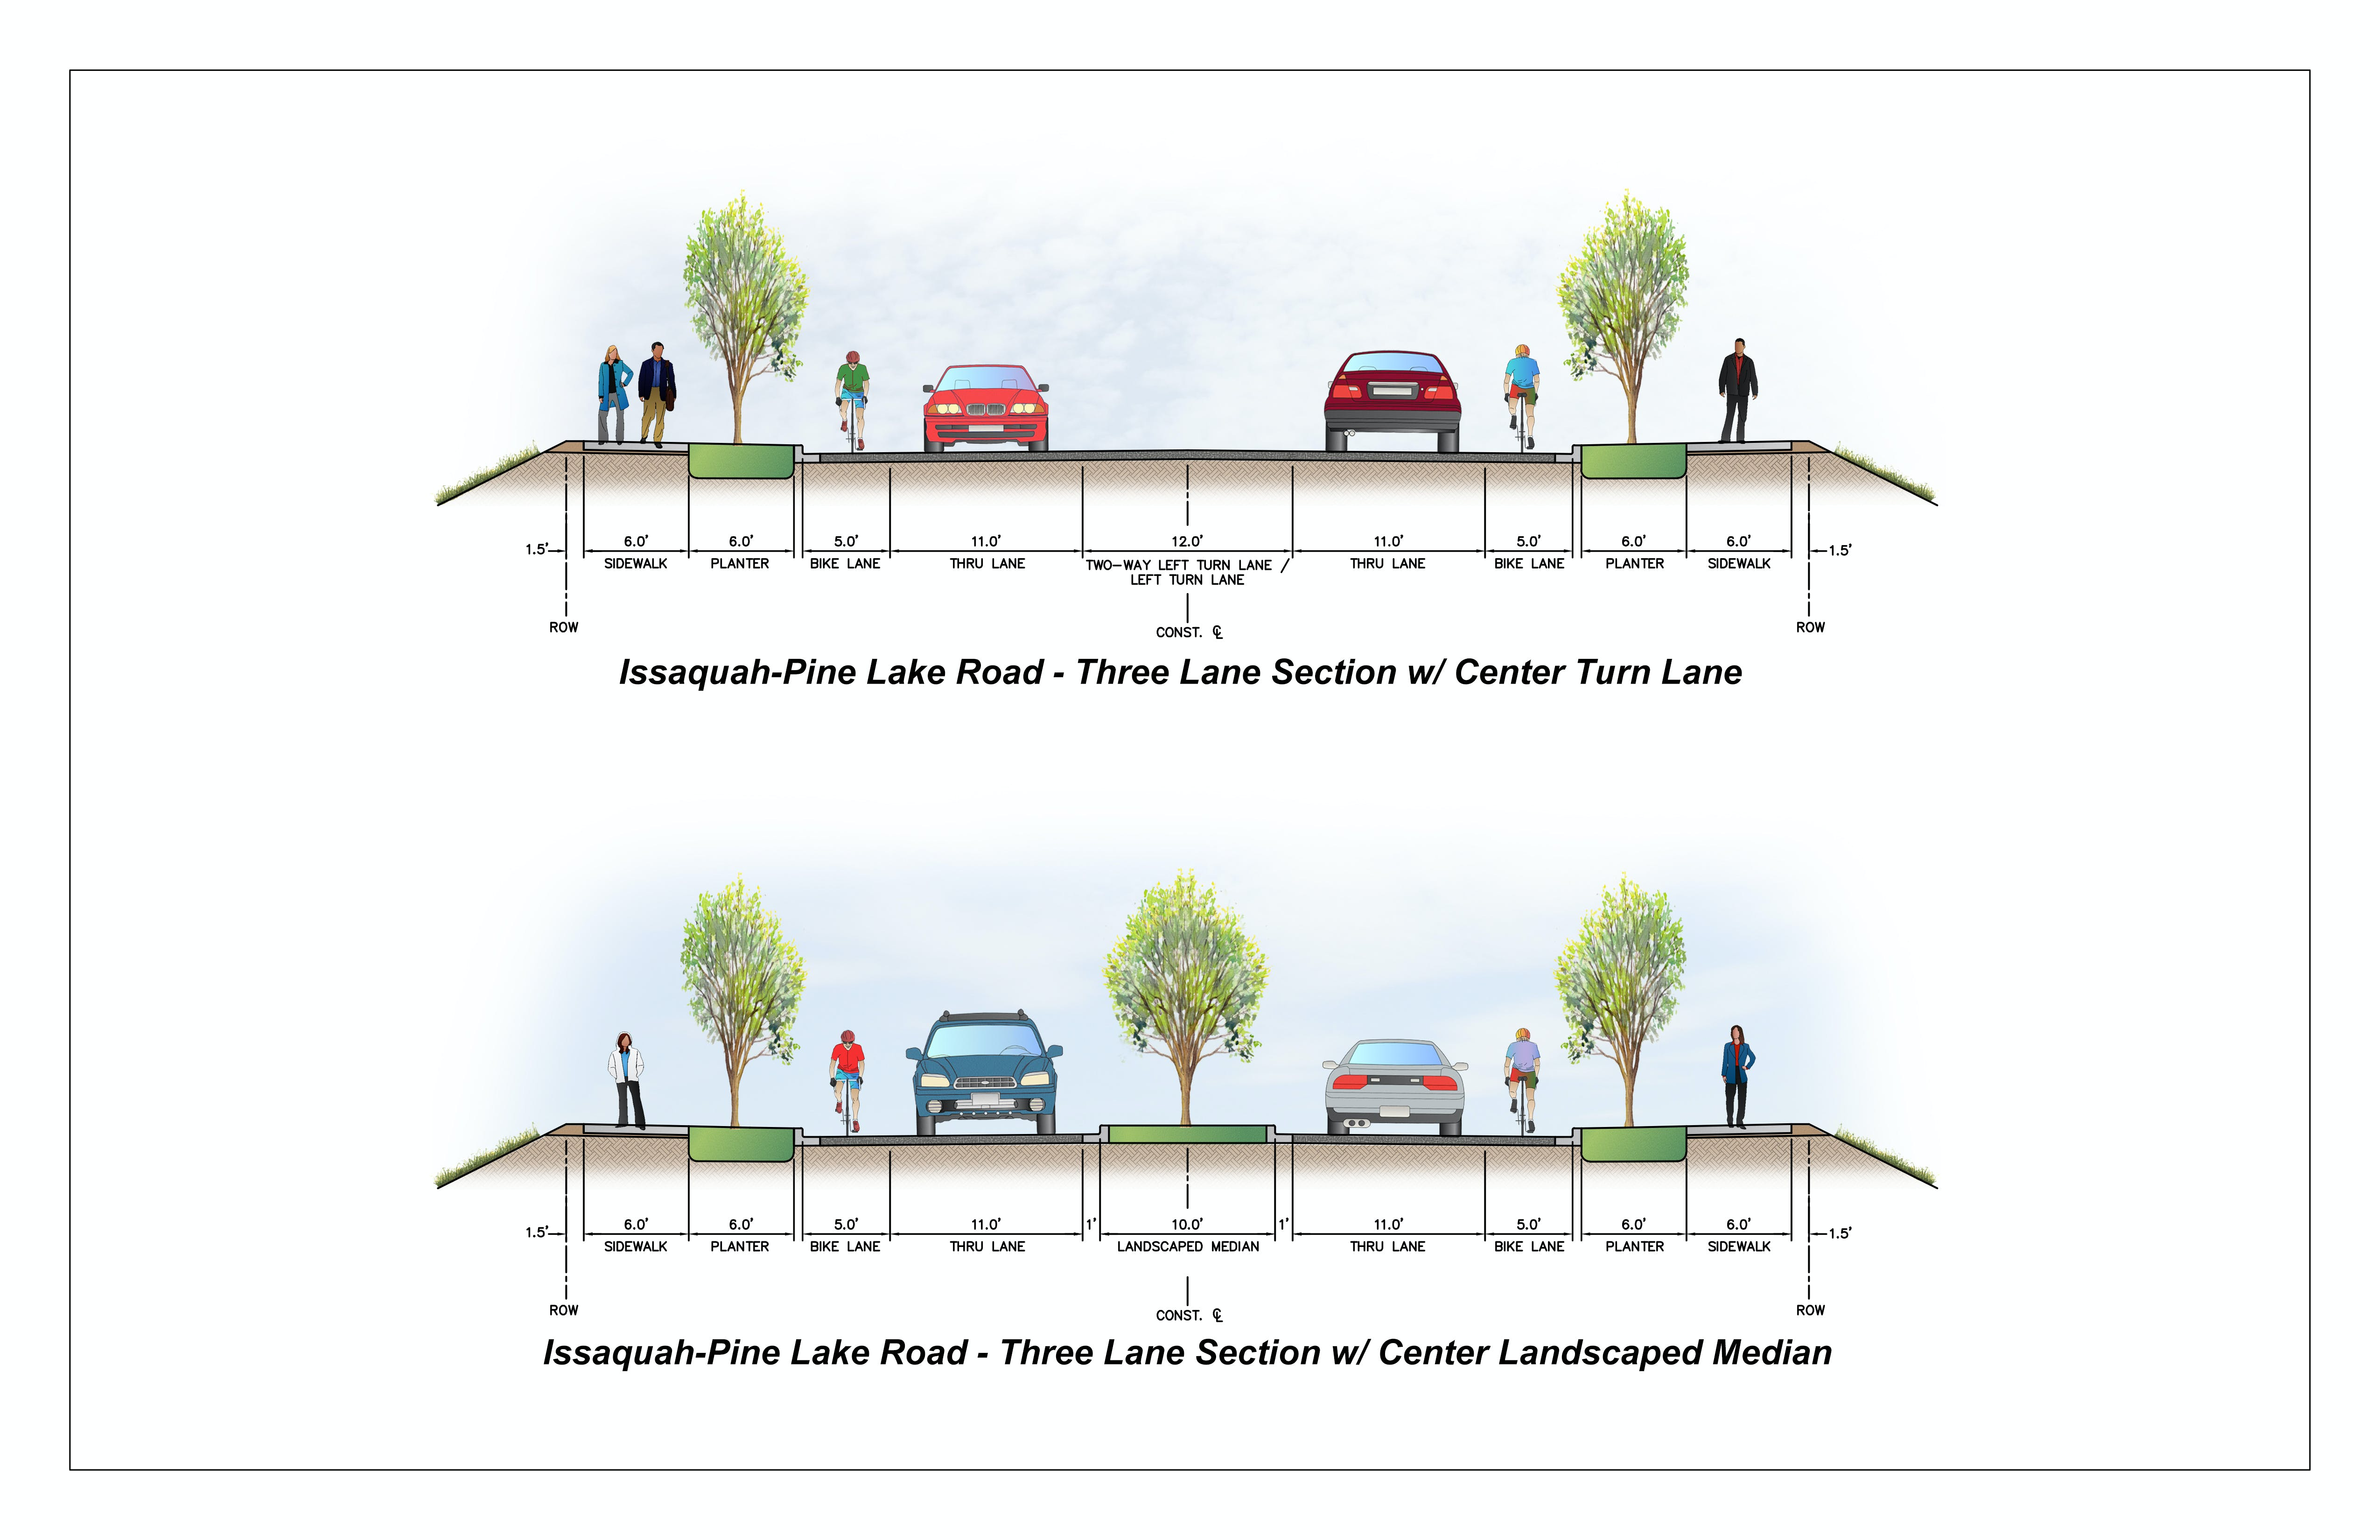 2020 0110 Iplr Roadway Cross Sections